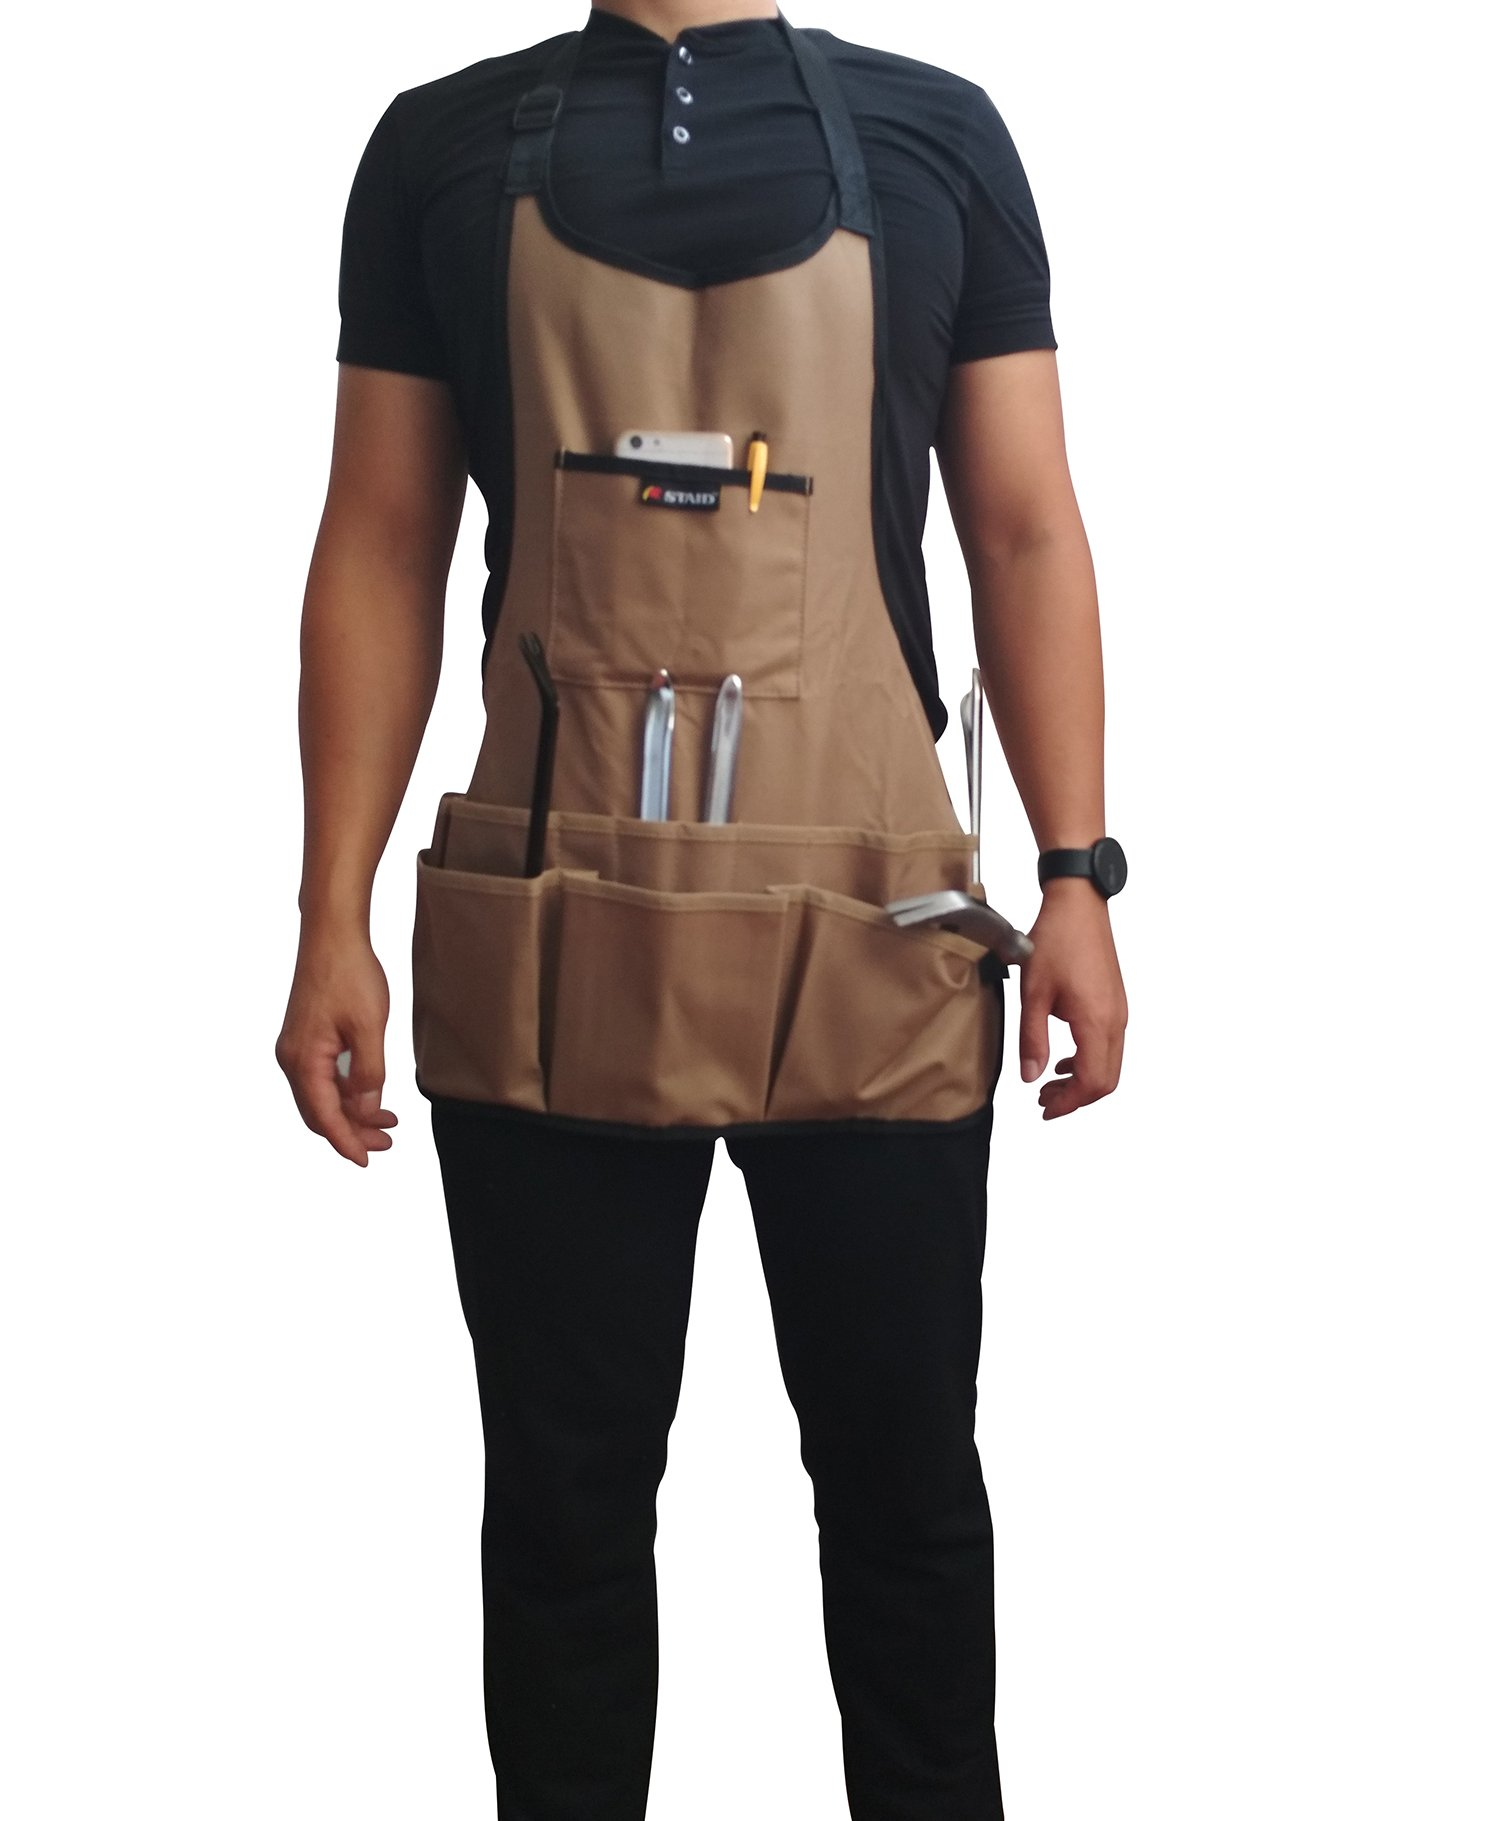 Tebery 600D Oxford Cloth Heavy Duty Work Apron, Adjustable and Durable Tool Aprons - Khaki by Tebery (Image #5)